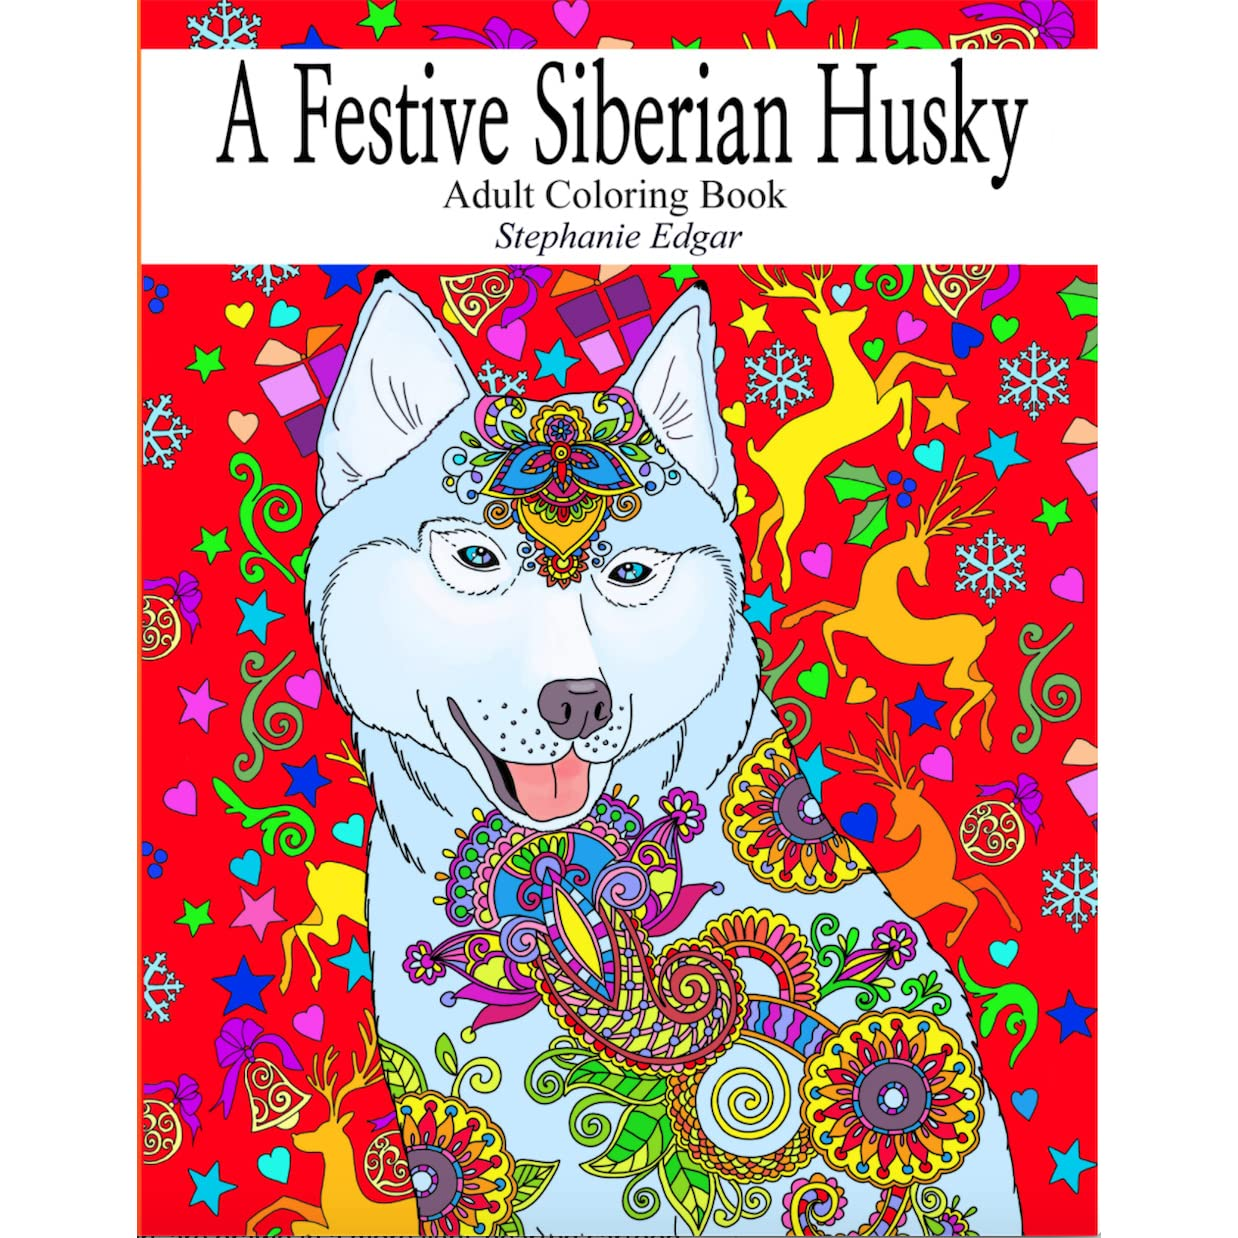 Book Giveaway For A Festive Siberian Husky Adult Coloring